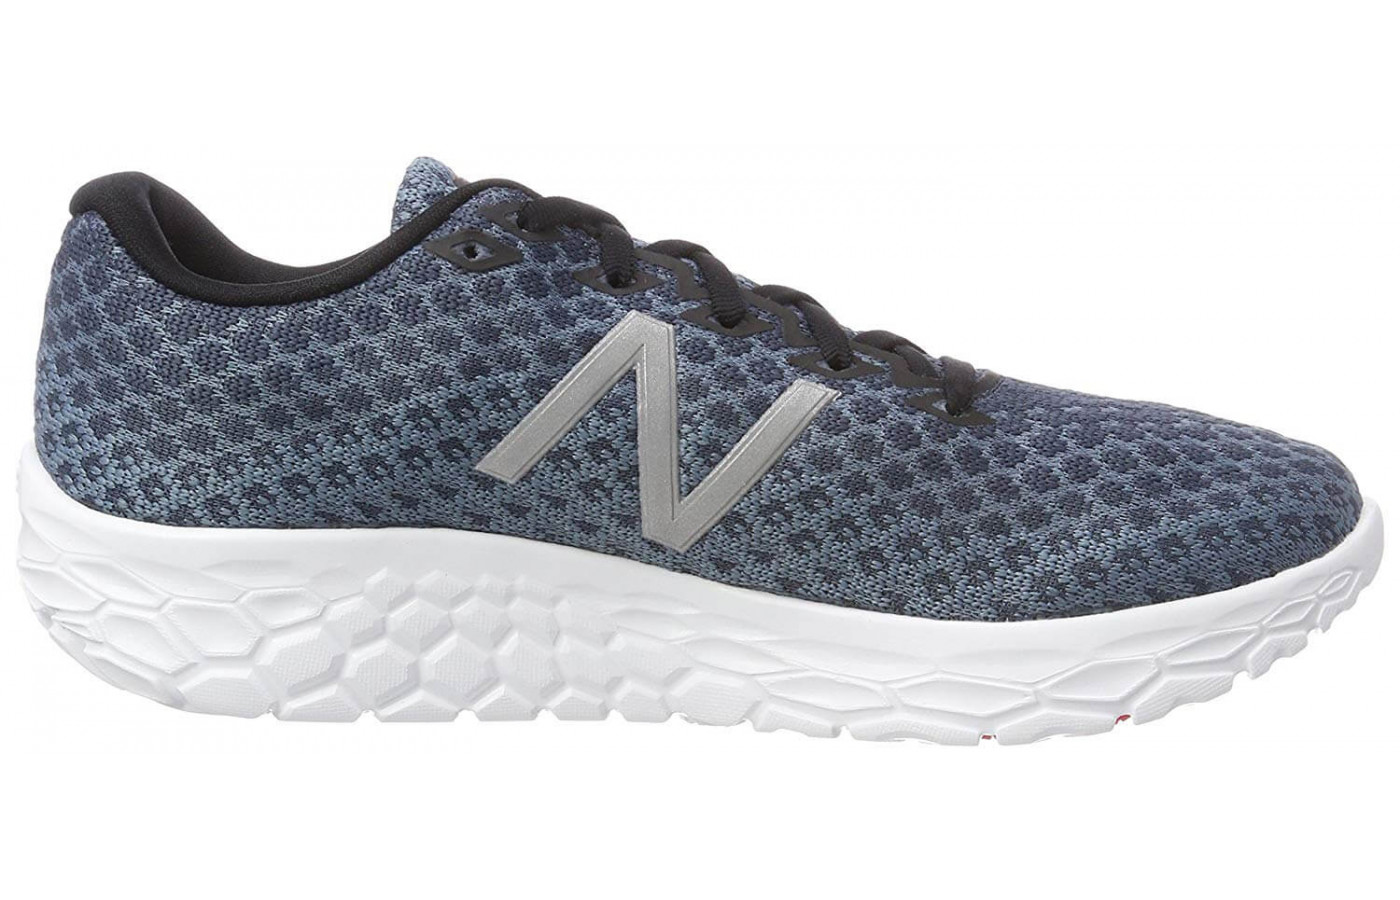 The Fresh Foam midsole provides soft cushioning